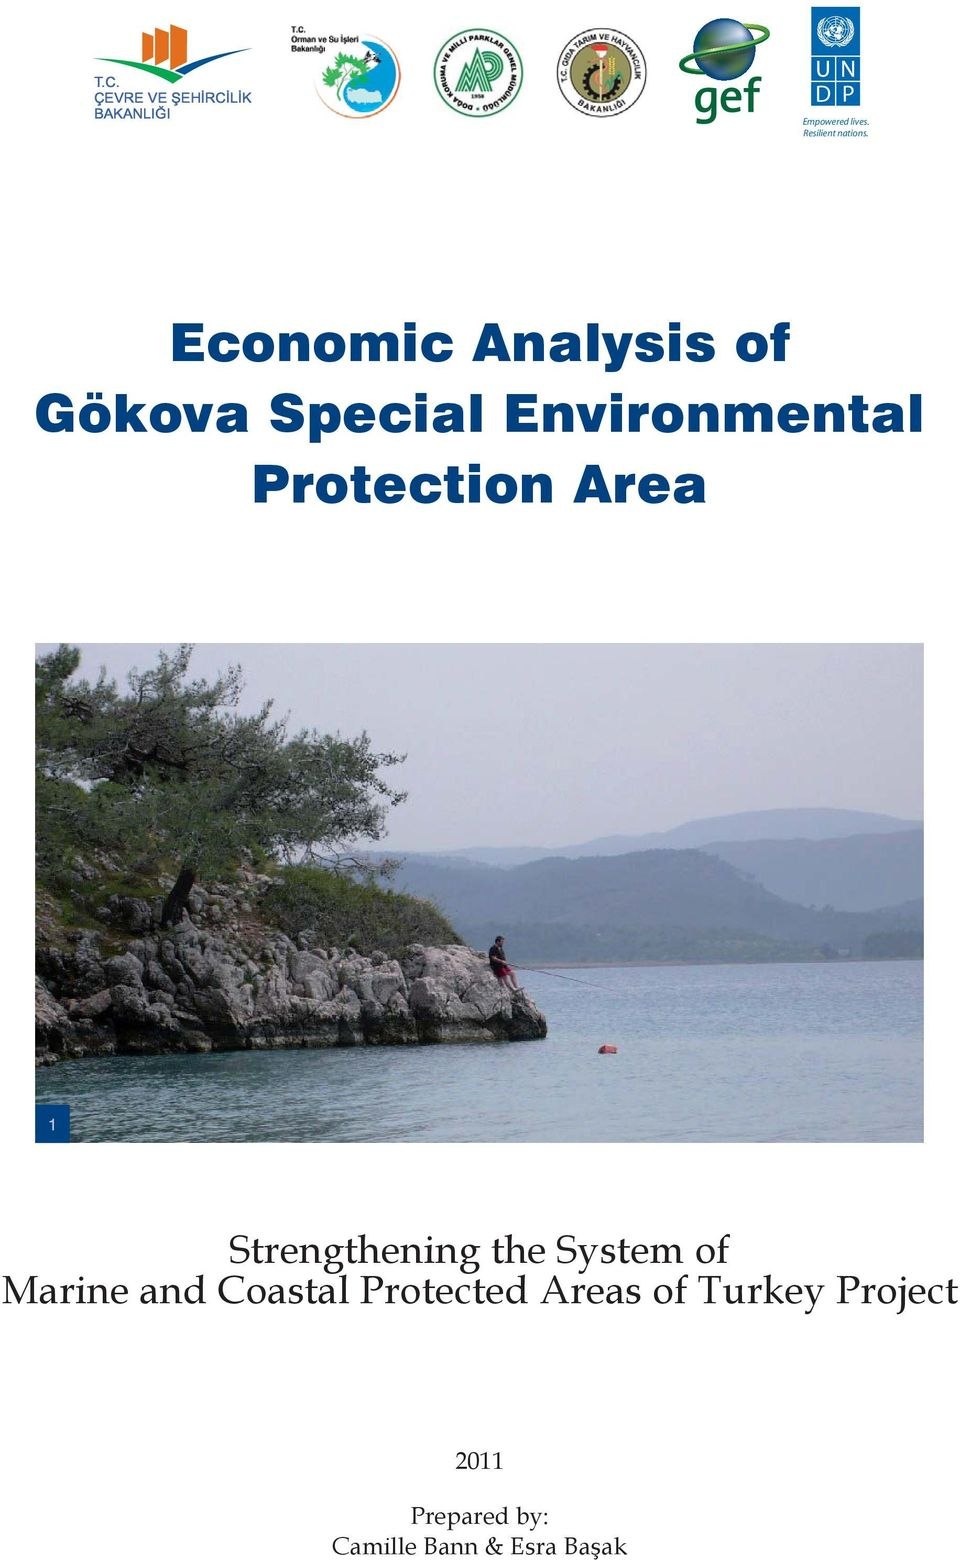 Economic Analysis of Gökova Special Environmental Protection Area